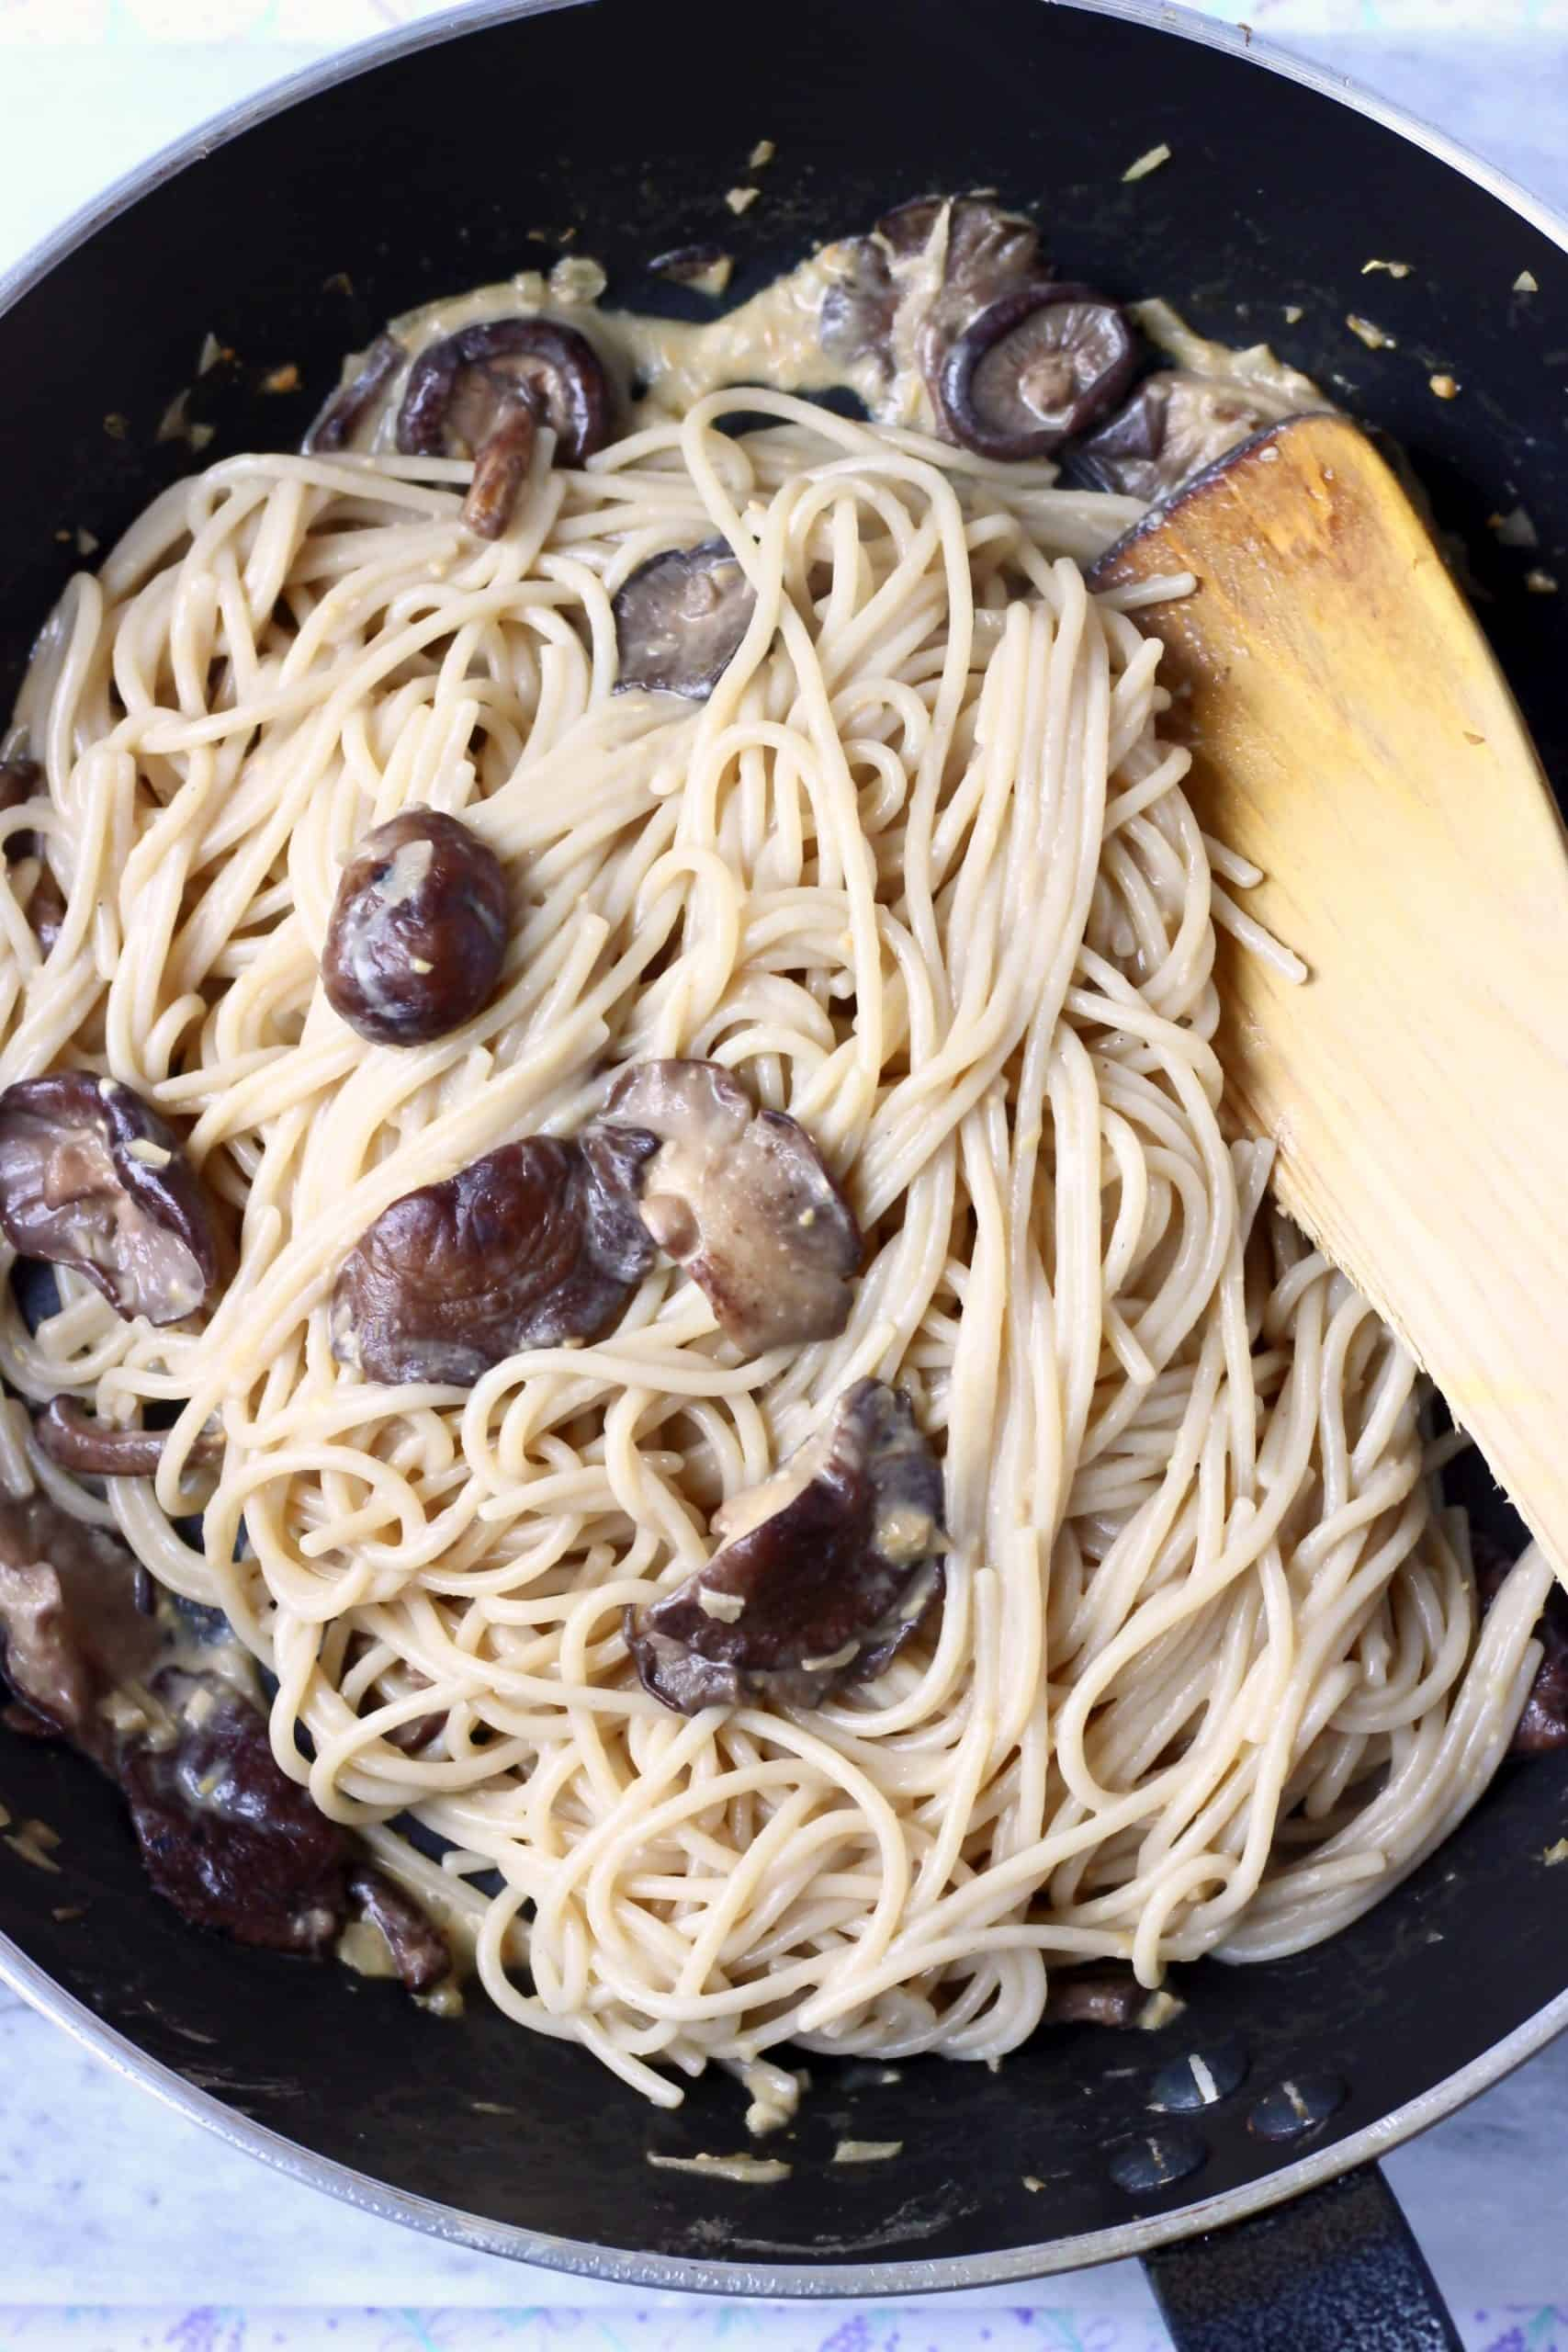 Creamy vegan miso pasta sauce with spaghetti and shiitake mushrooms being mixed together in a black frying pan